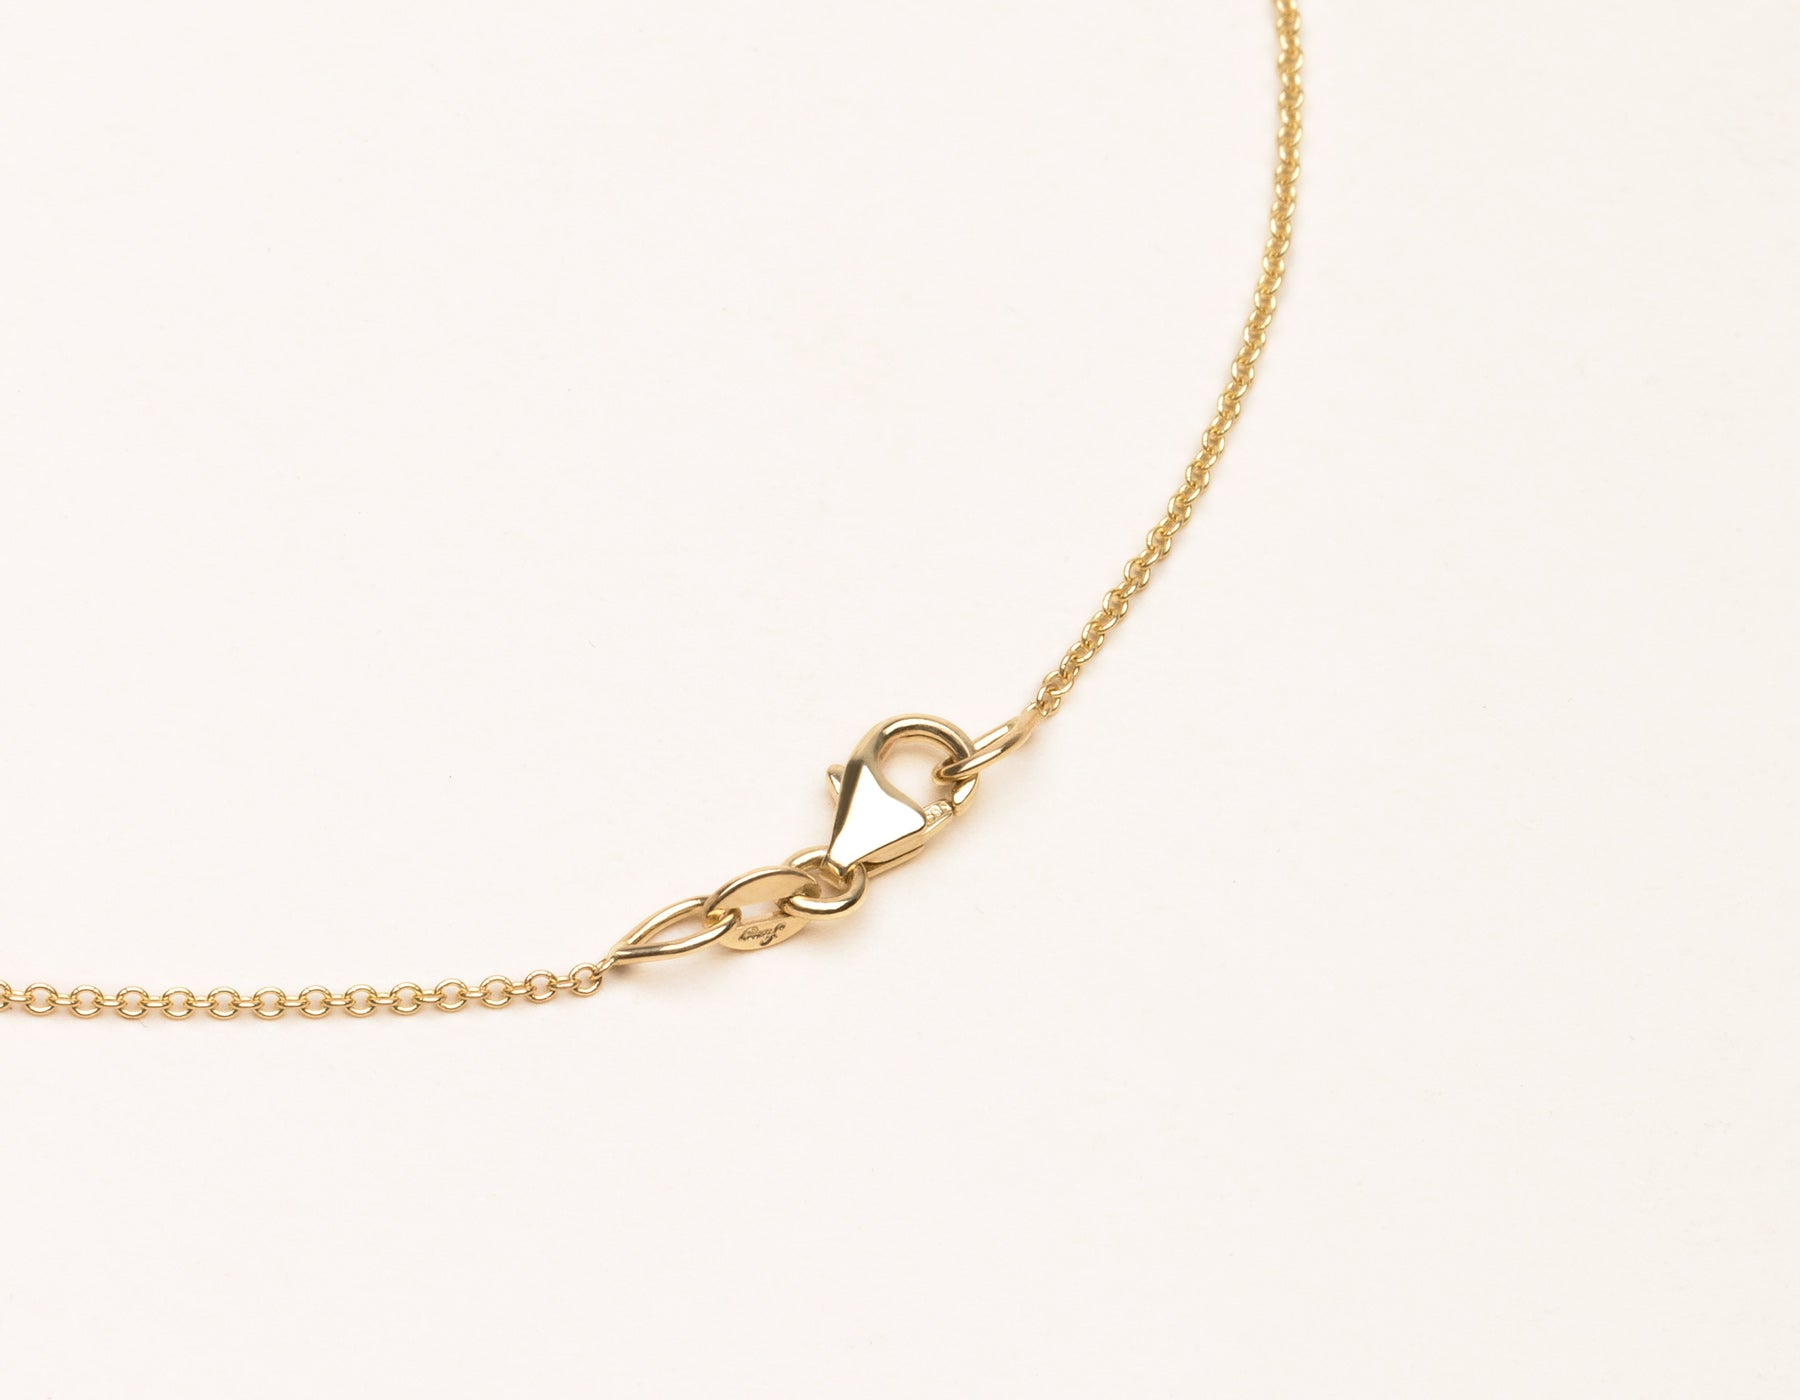 Vrai & Oro 18K Solid Gold Necklace Lobster Clasp, 18K Yellow Gold